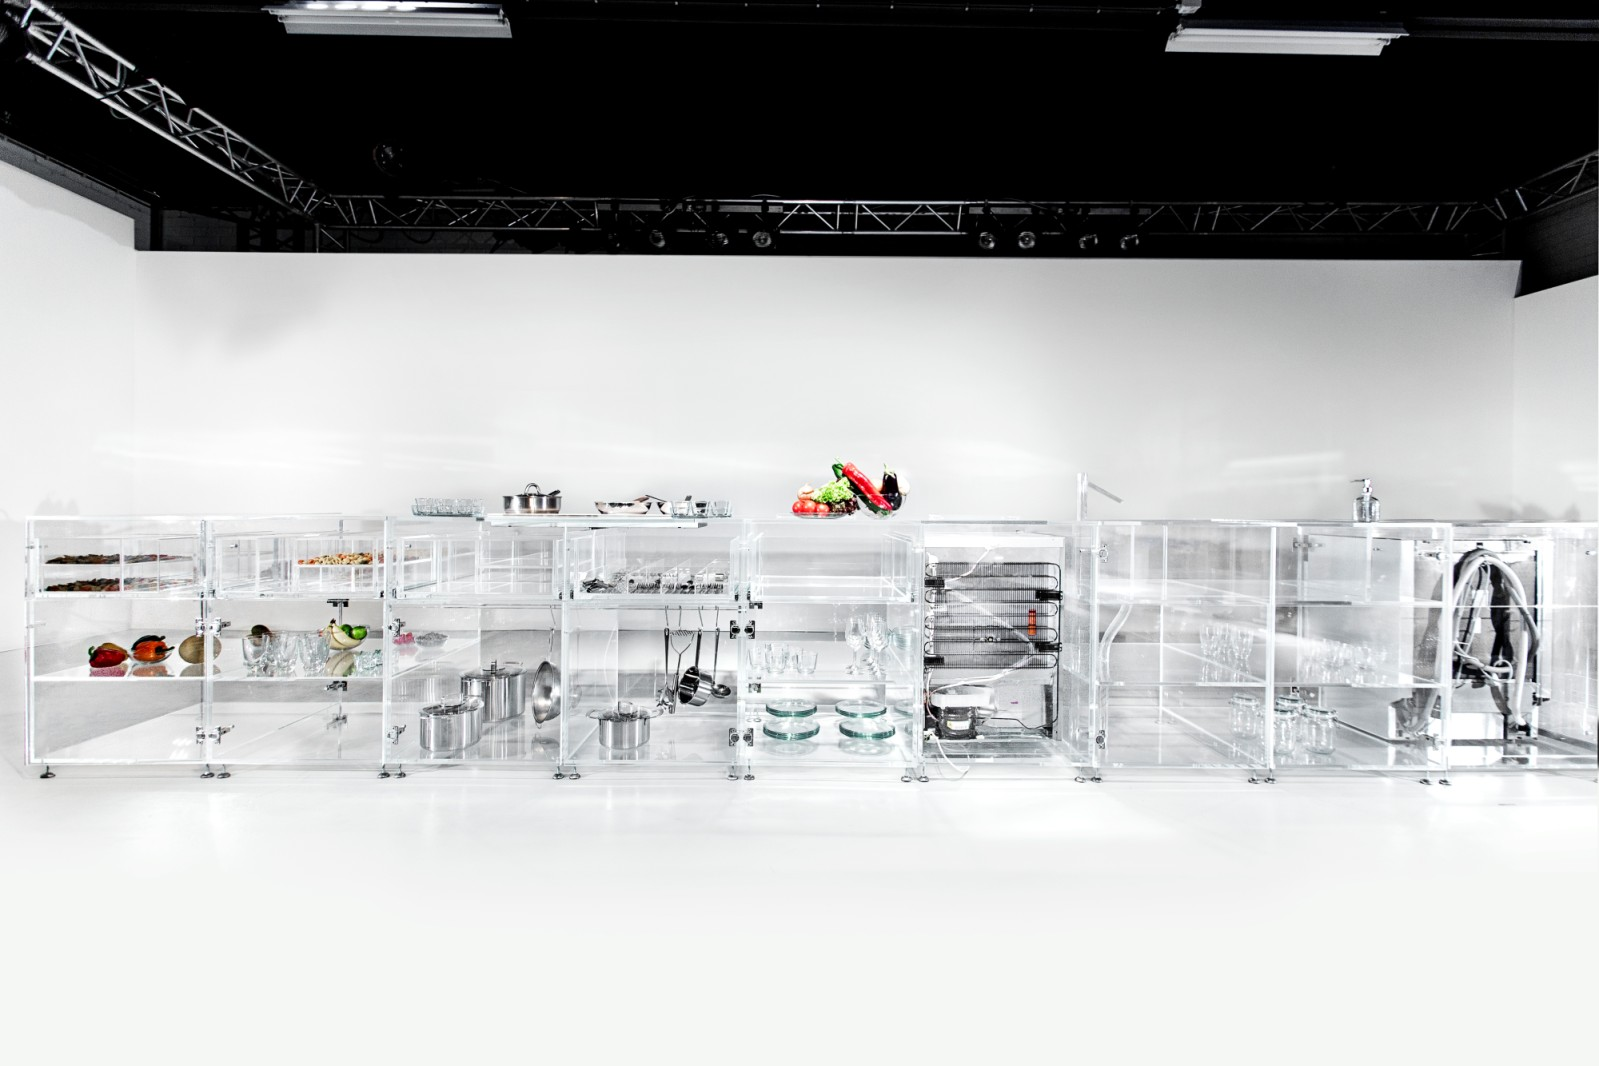 Kitchen Present Mvrdv Present Infinity Kitchen At Venice Biennale 2016